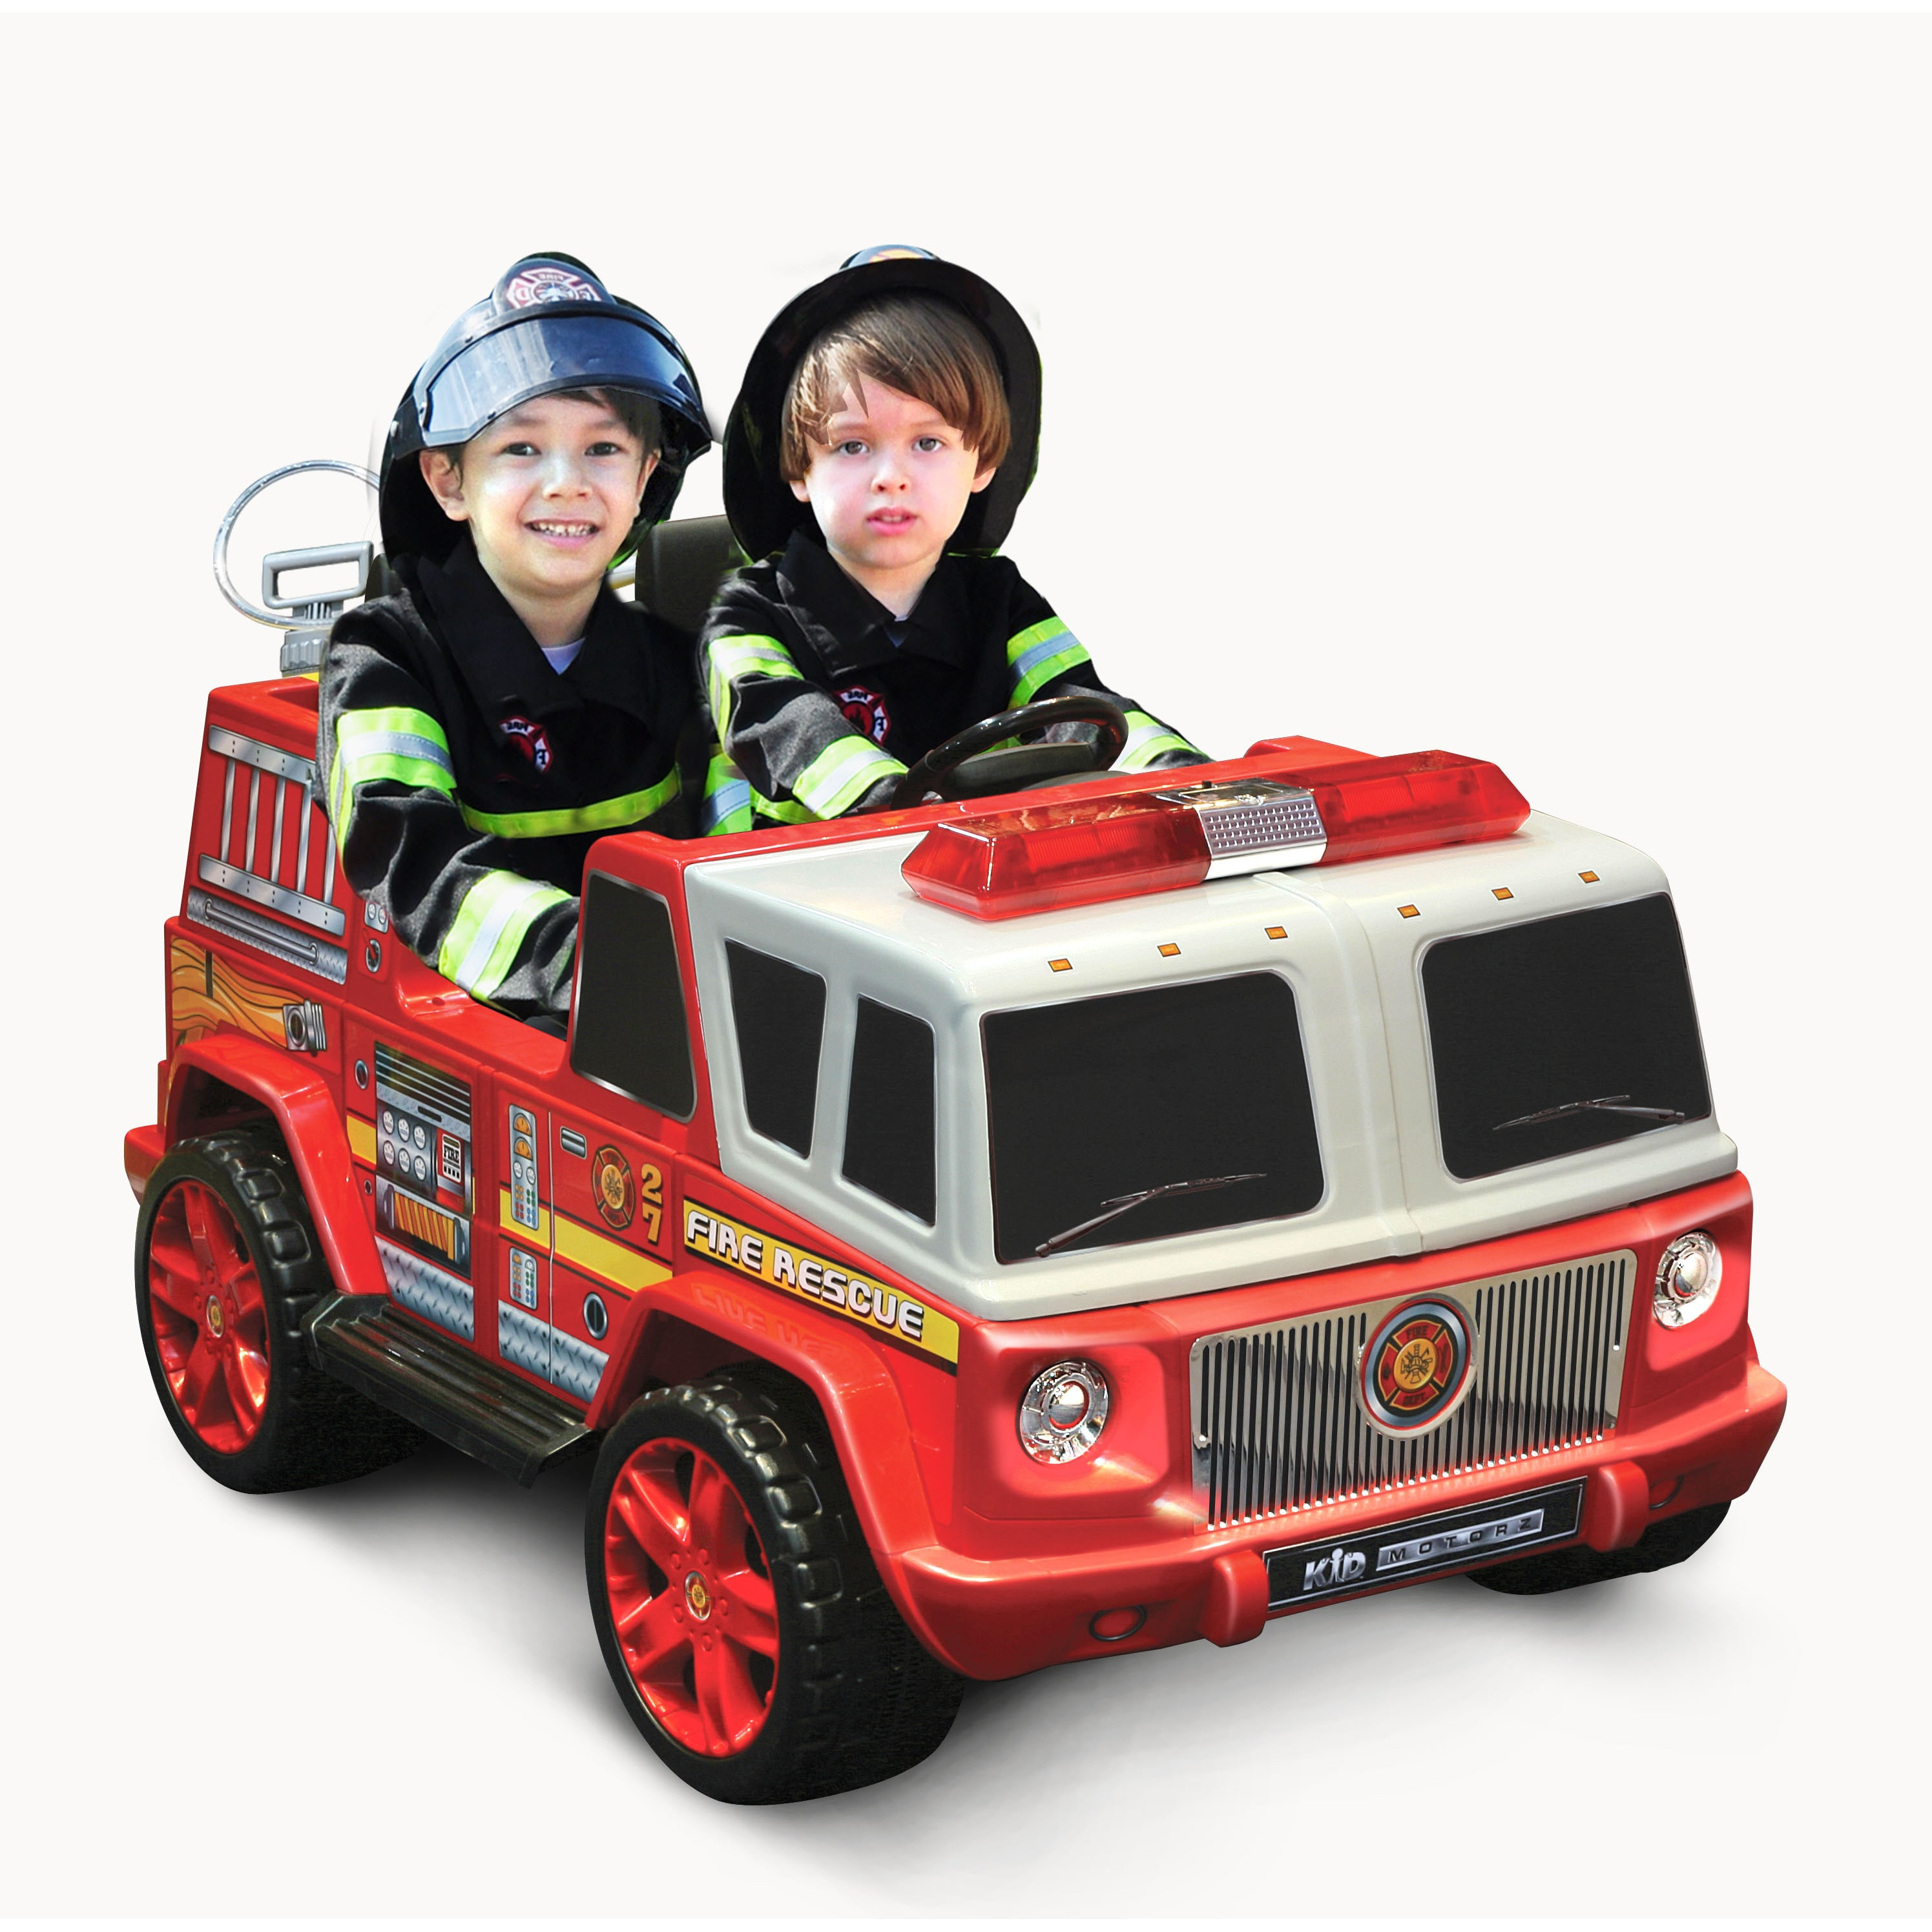 c8269d69f Kid Motorz Two-Seater Fire Engine 12-Volt Battery-Operated Ride-On ...